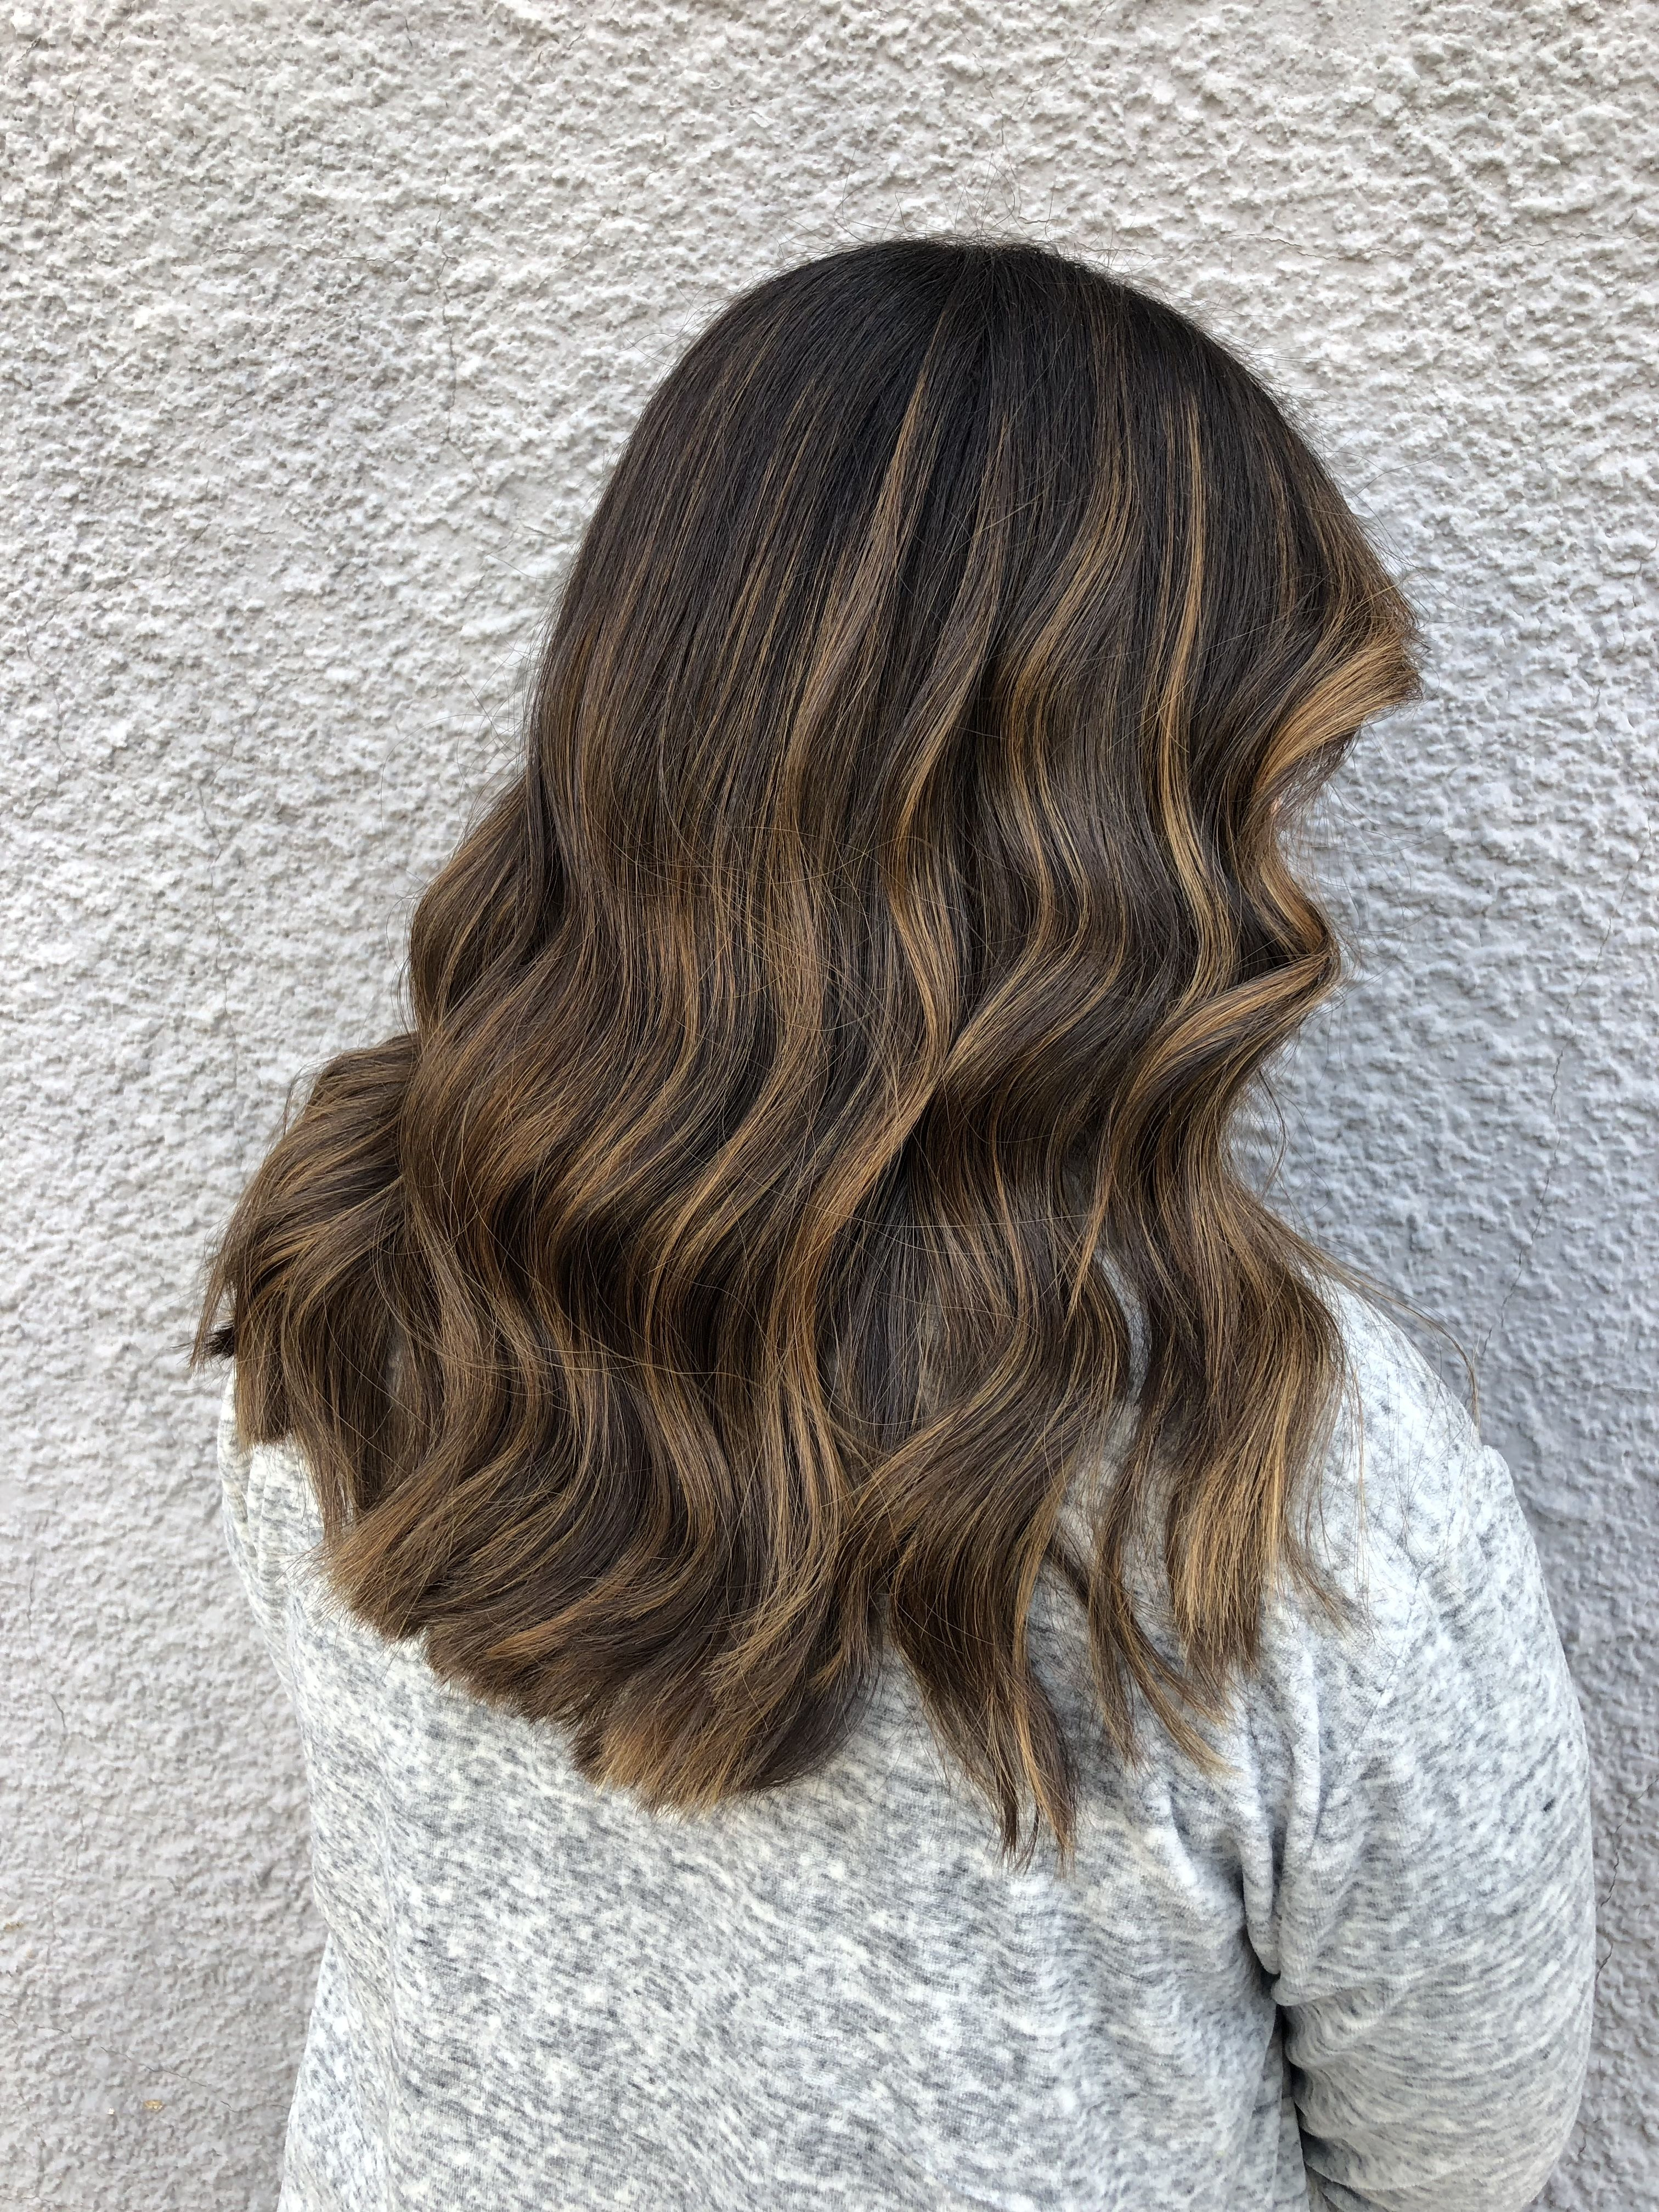 Current Curly Golden Brown Balayage Long Hairstyles In Hairstyles : Balayage For Curly Hair Super Best Golden Caramel (View 8 of 20)